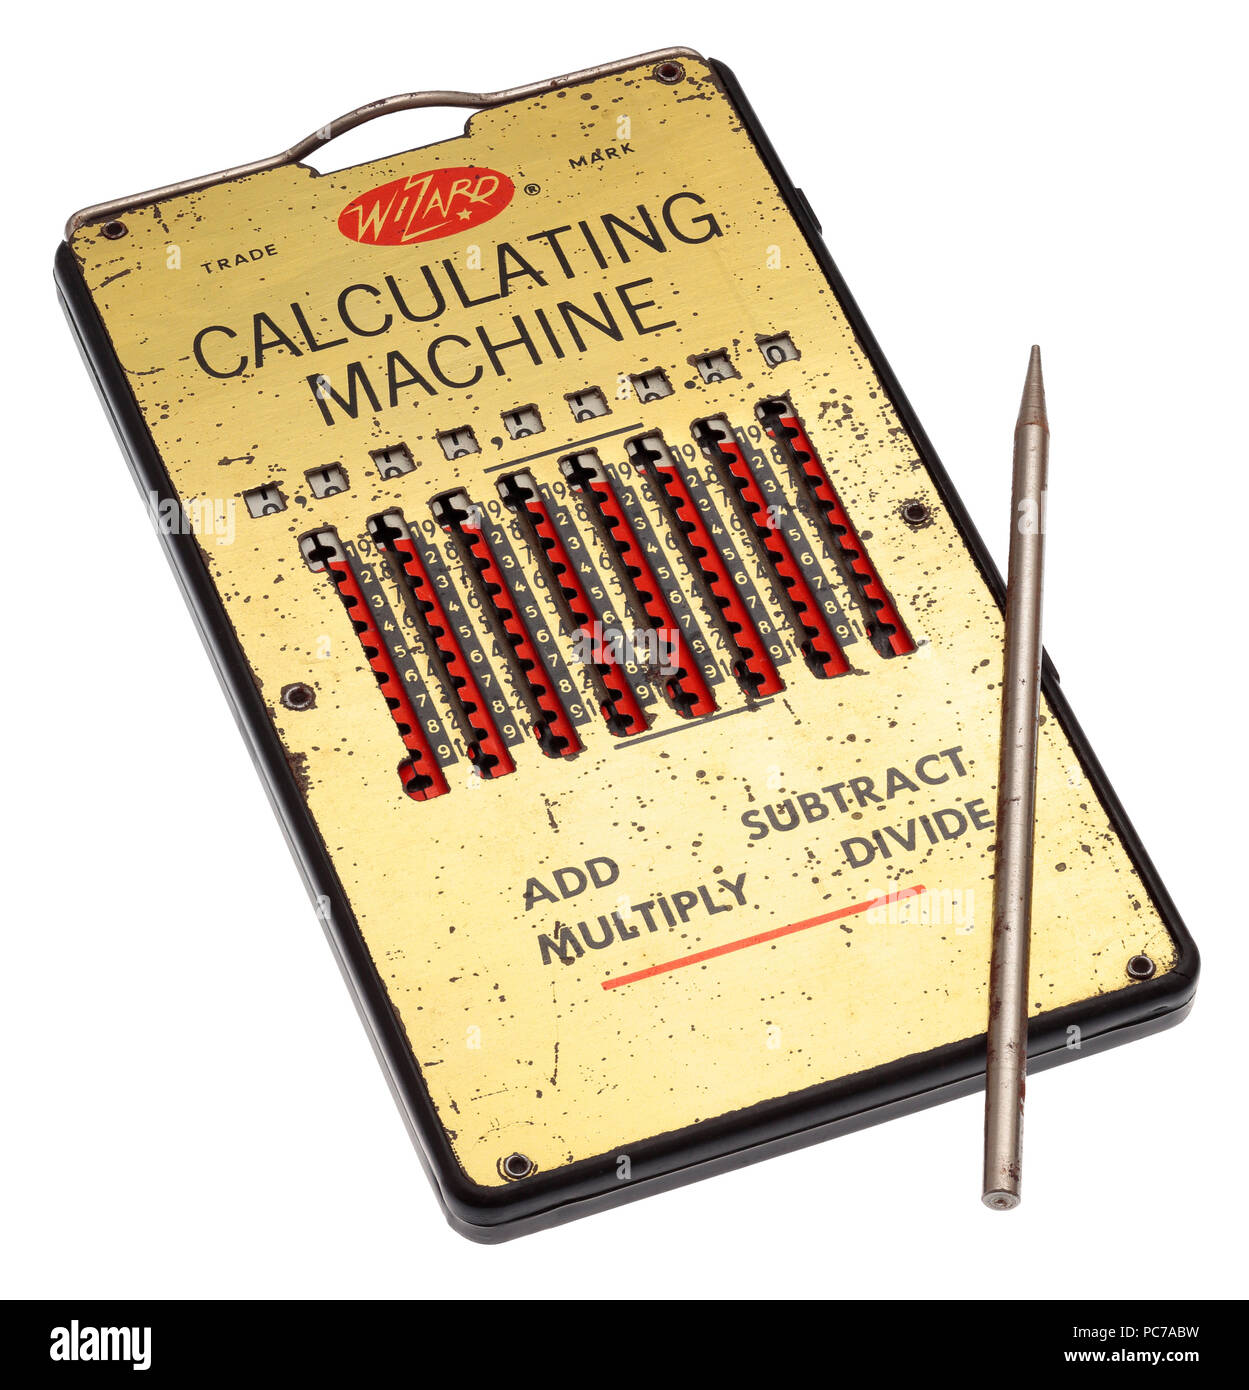 Wizard pocket calculator made in Germany in the 50s - Stock Image